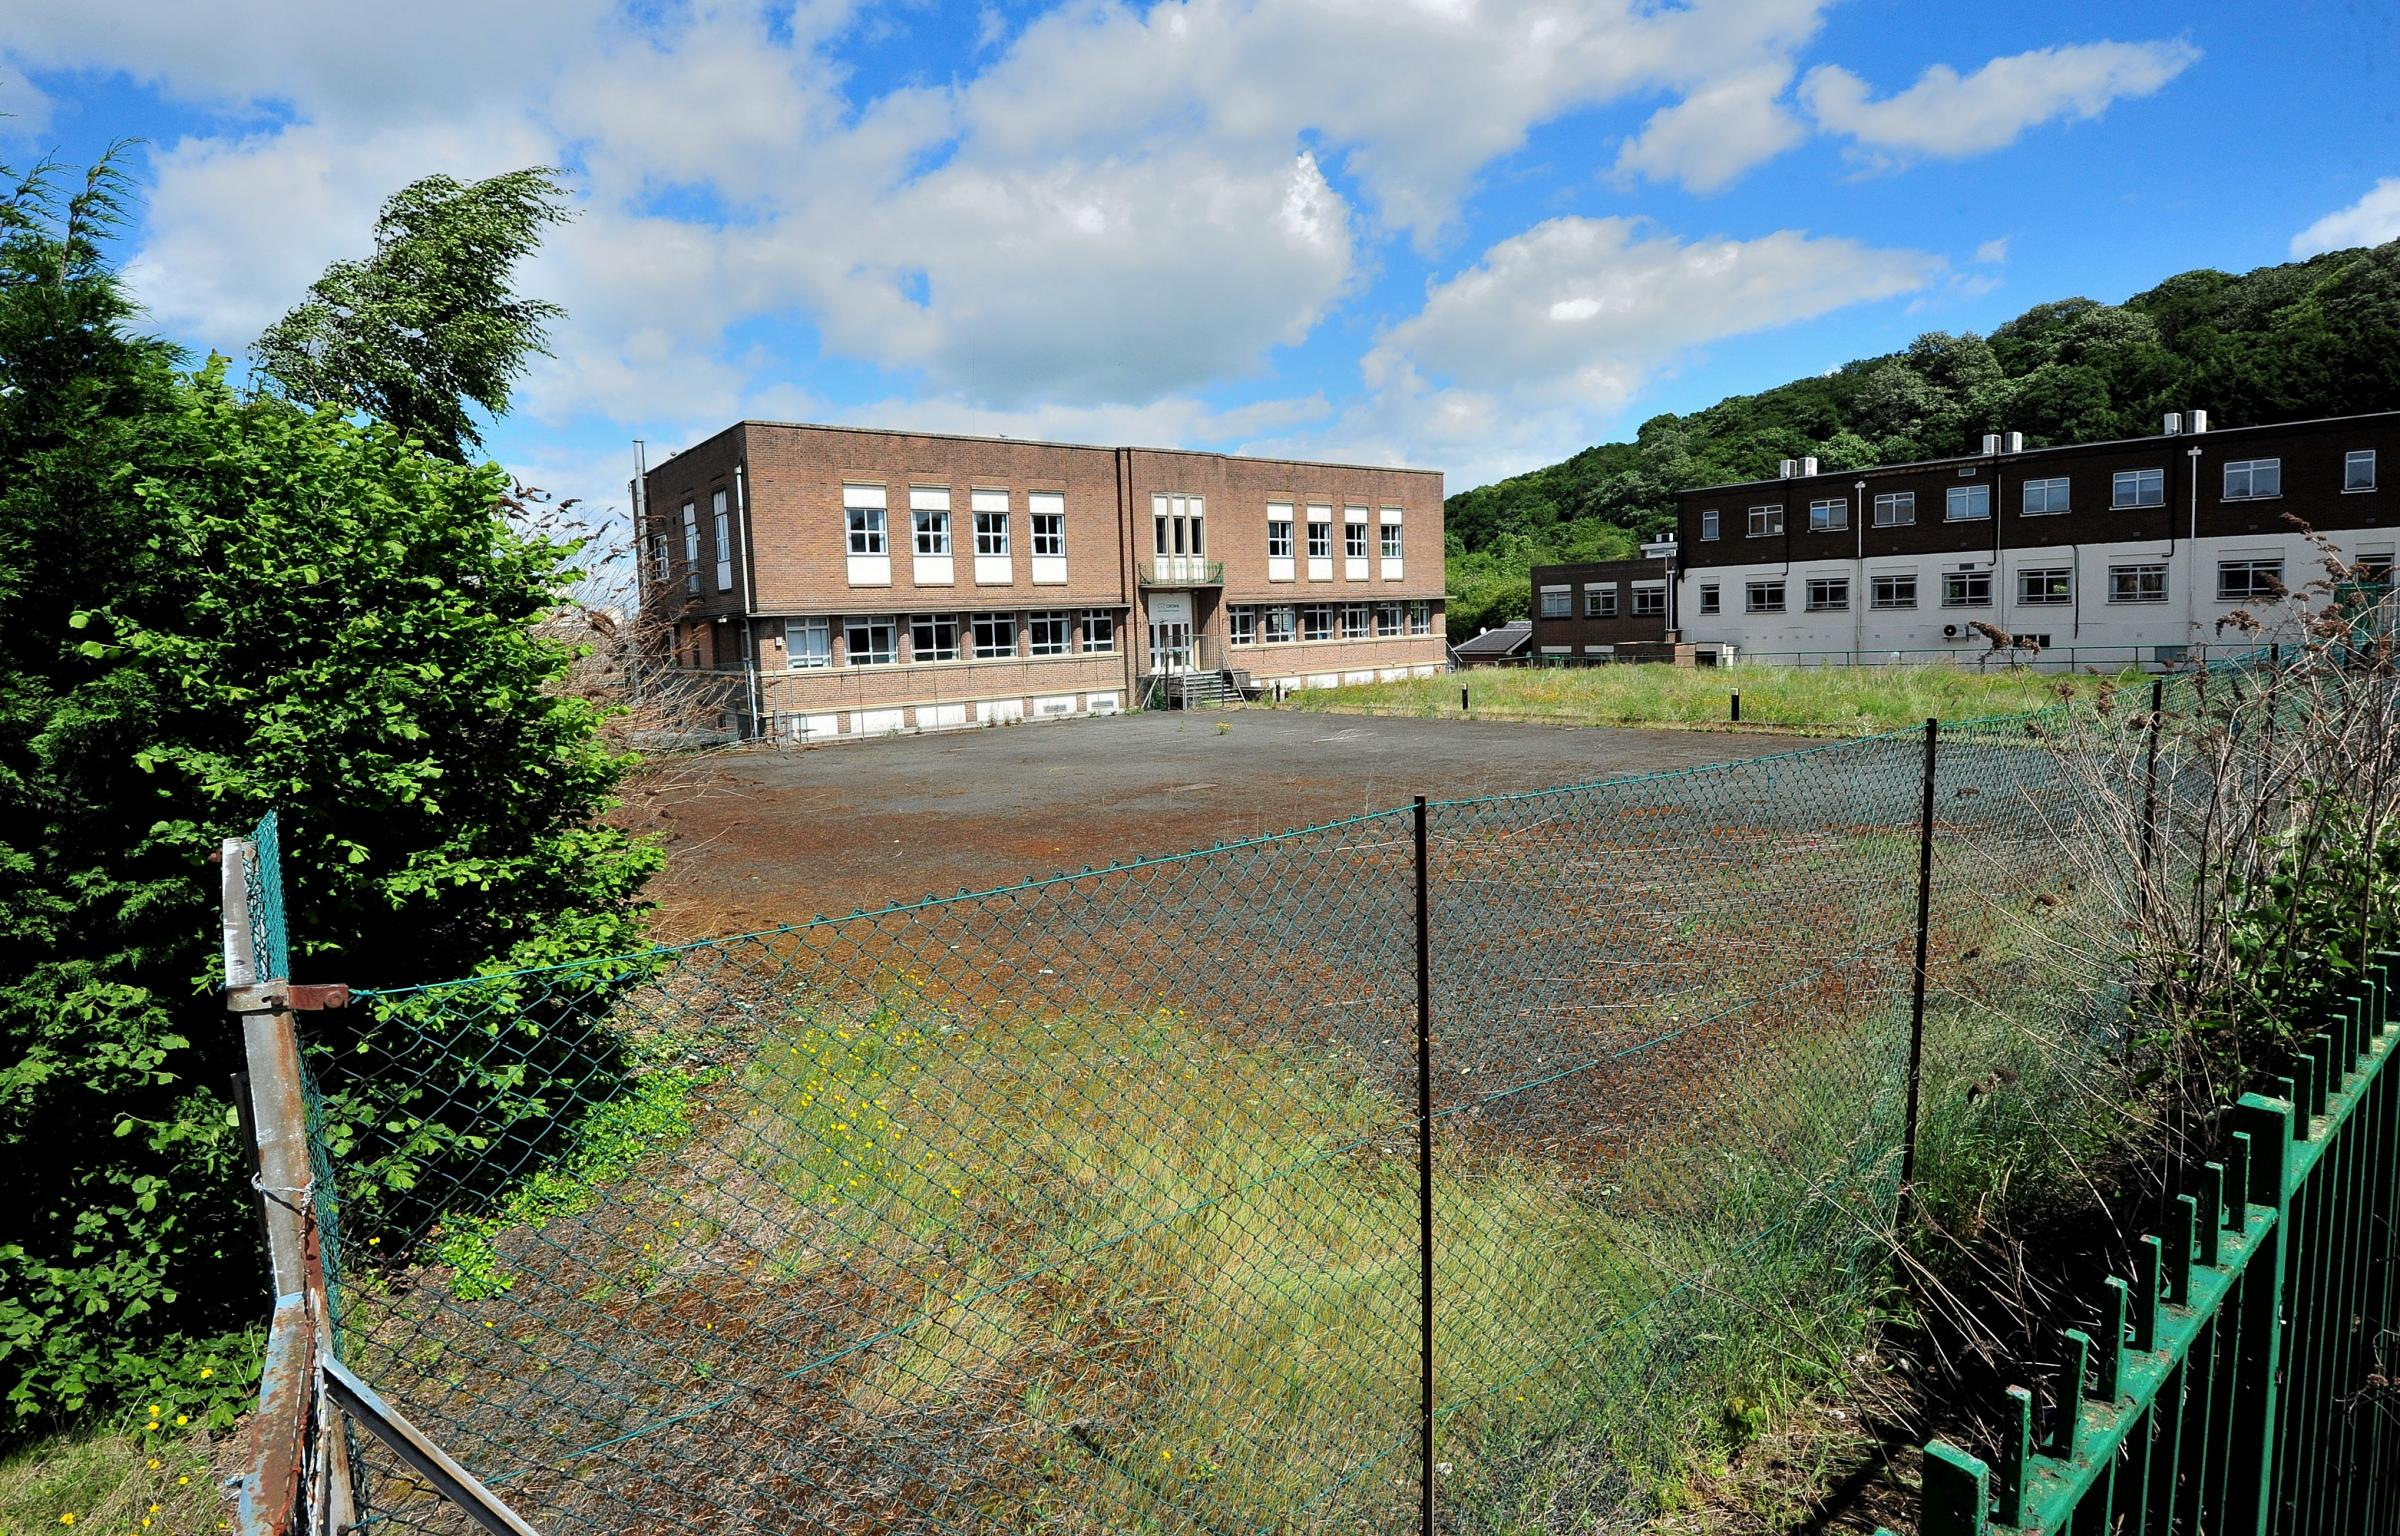 HOMES: Developer Taylor Wimpey wants to turn the old Metalbox factory site into a new housing estate, one of many major developments planned for Worcester